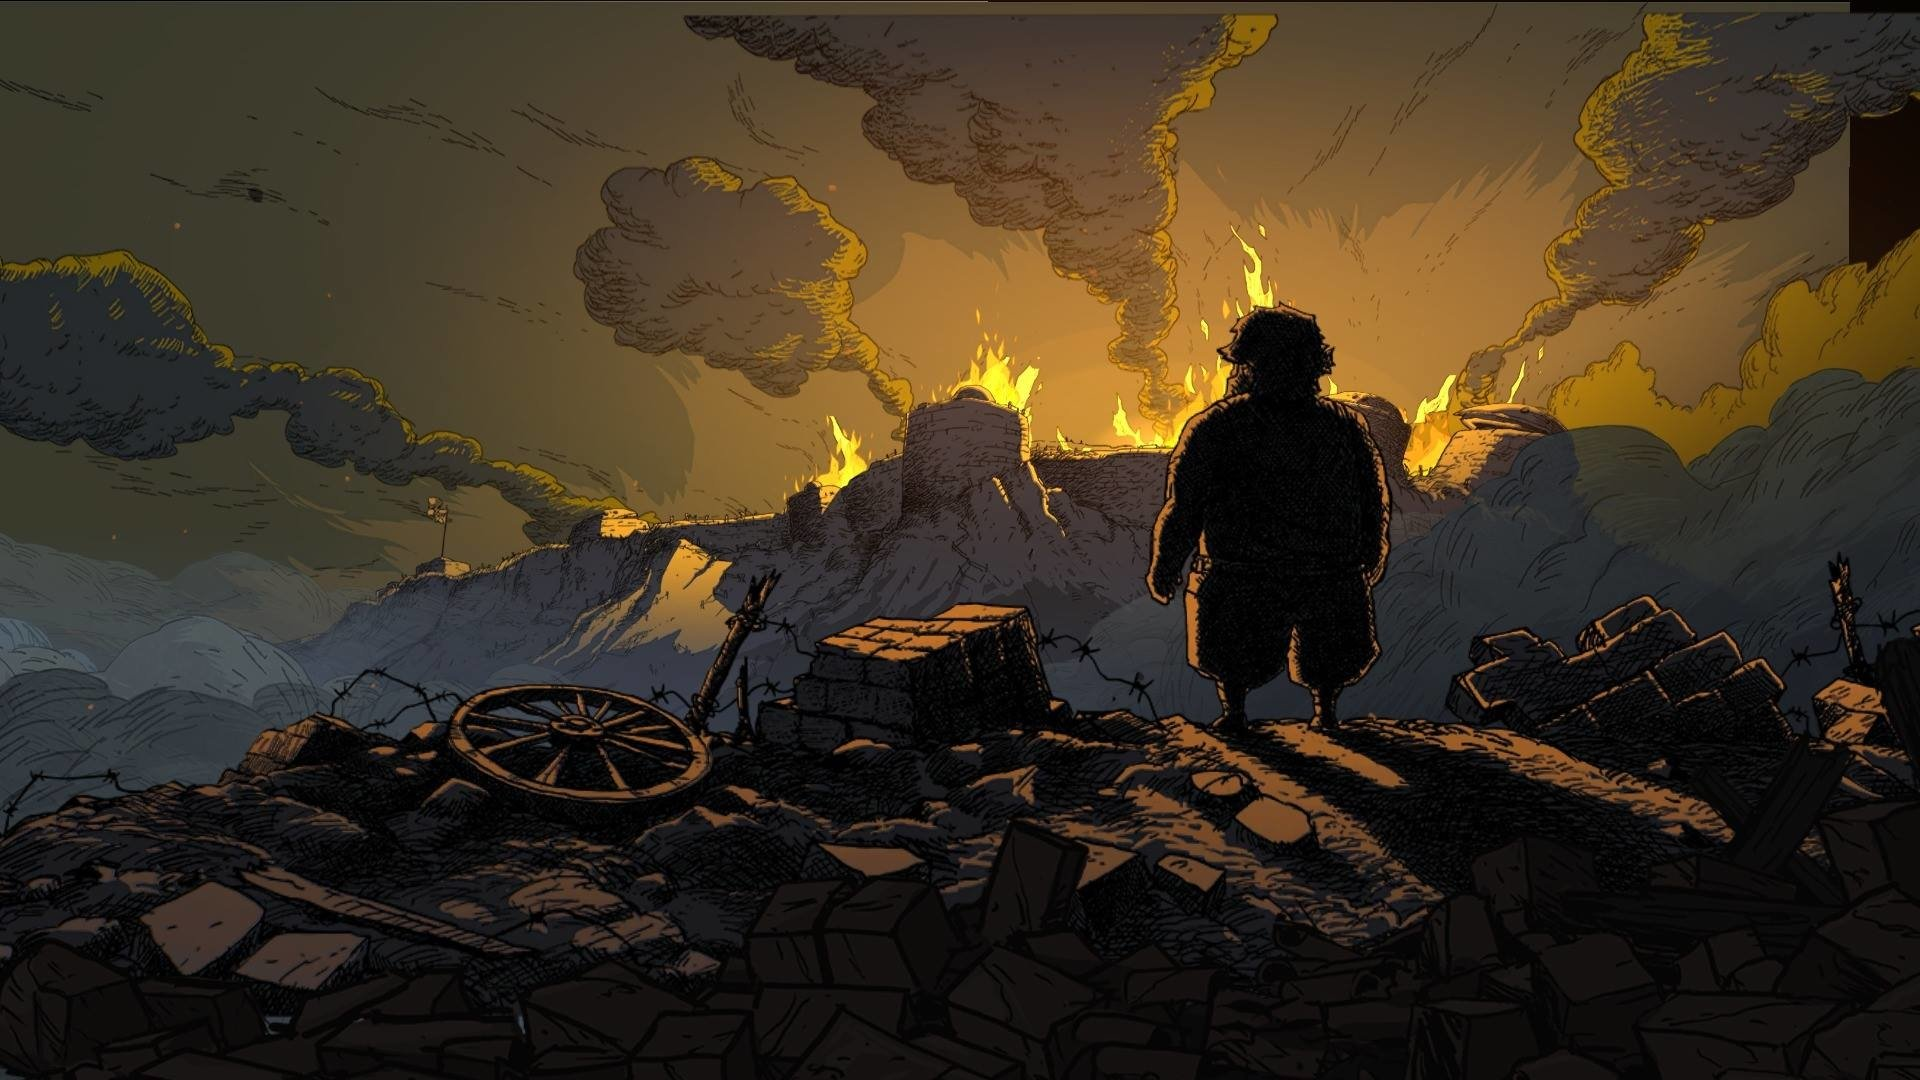 Valiant Hearts The Great War HD Wallpaper Background Image 1920x1080 ID612135